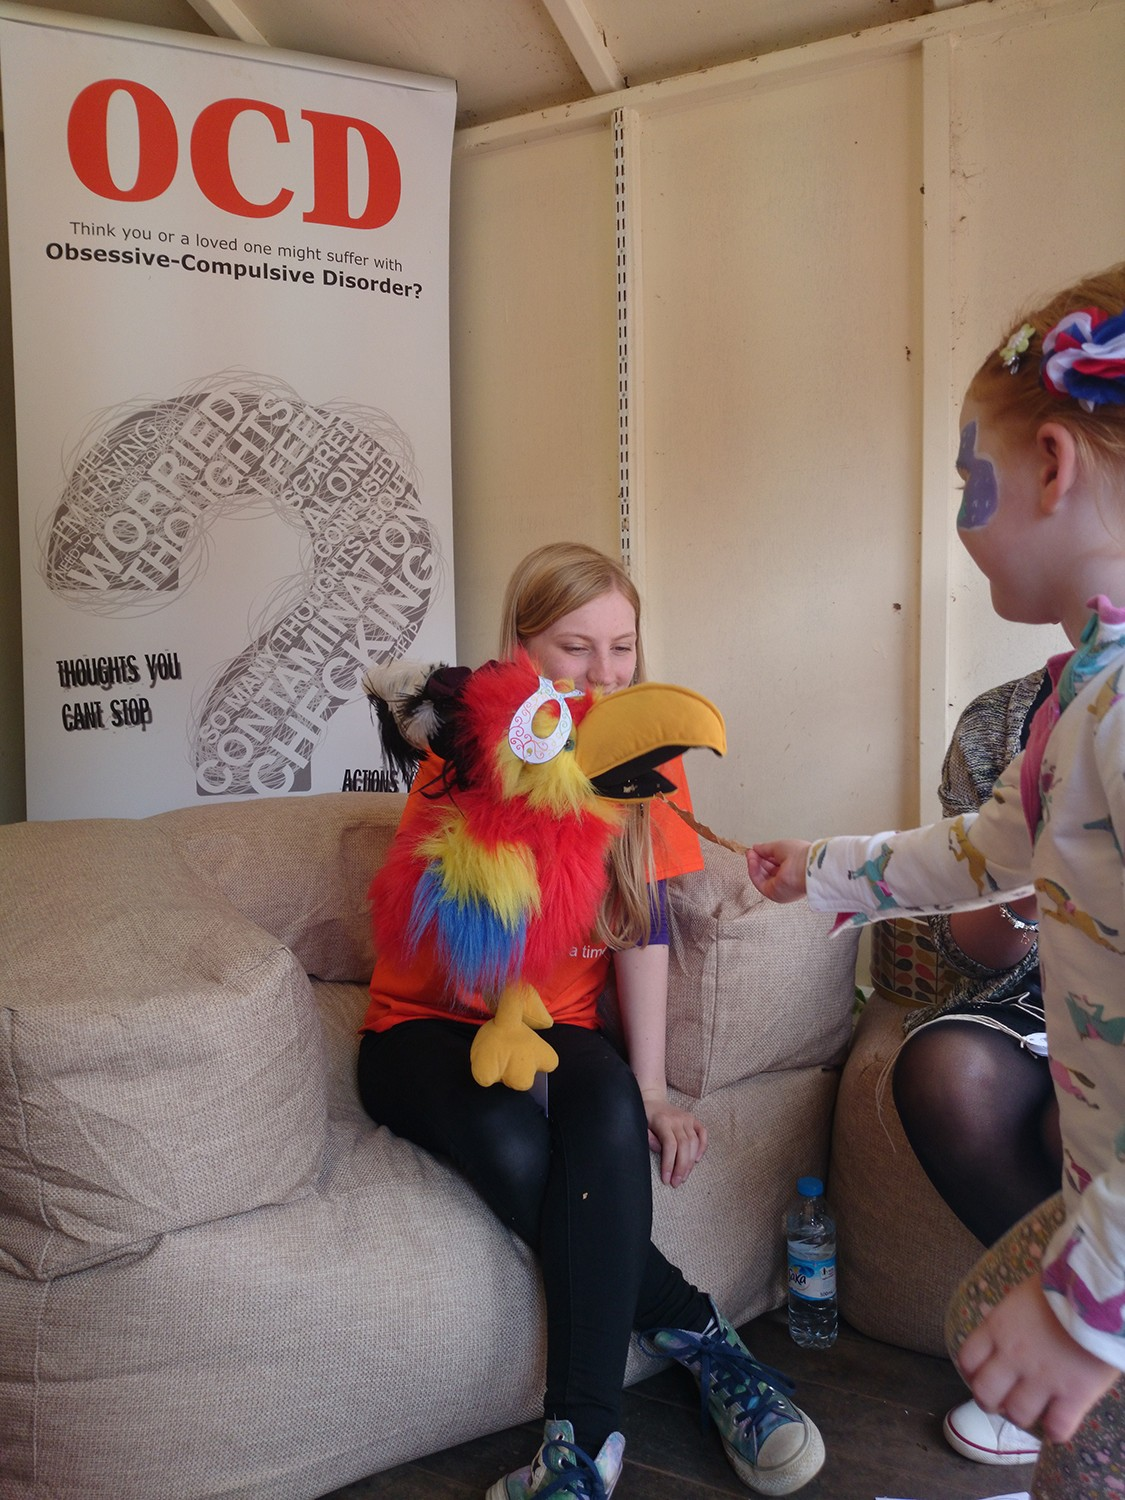 An OCD-UK volunteer working with a young person during an OCD awareness campaign in the East Midlands.